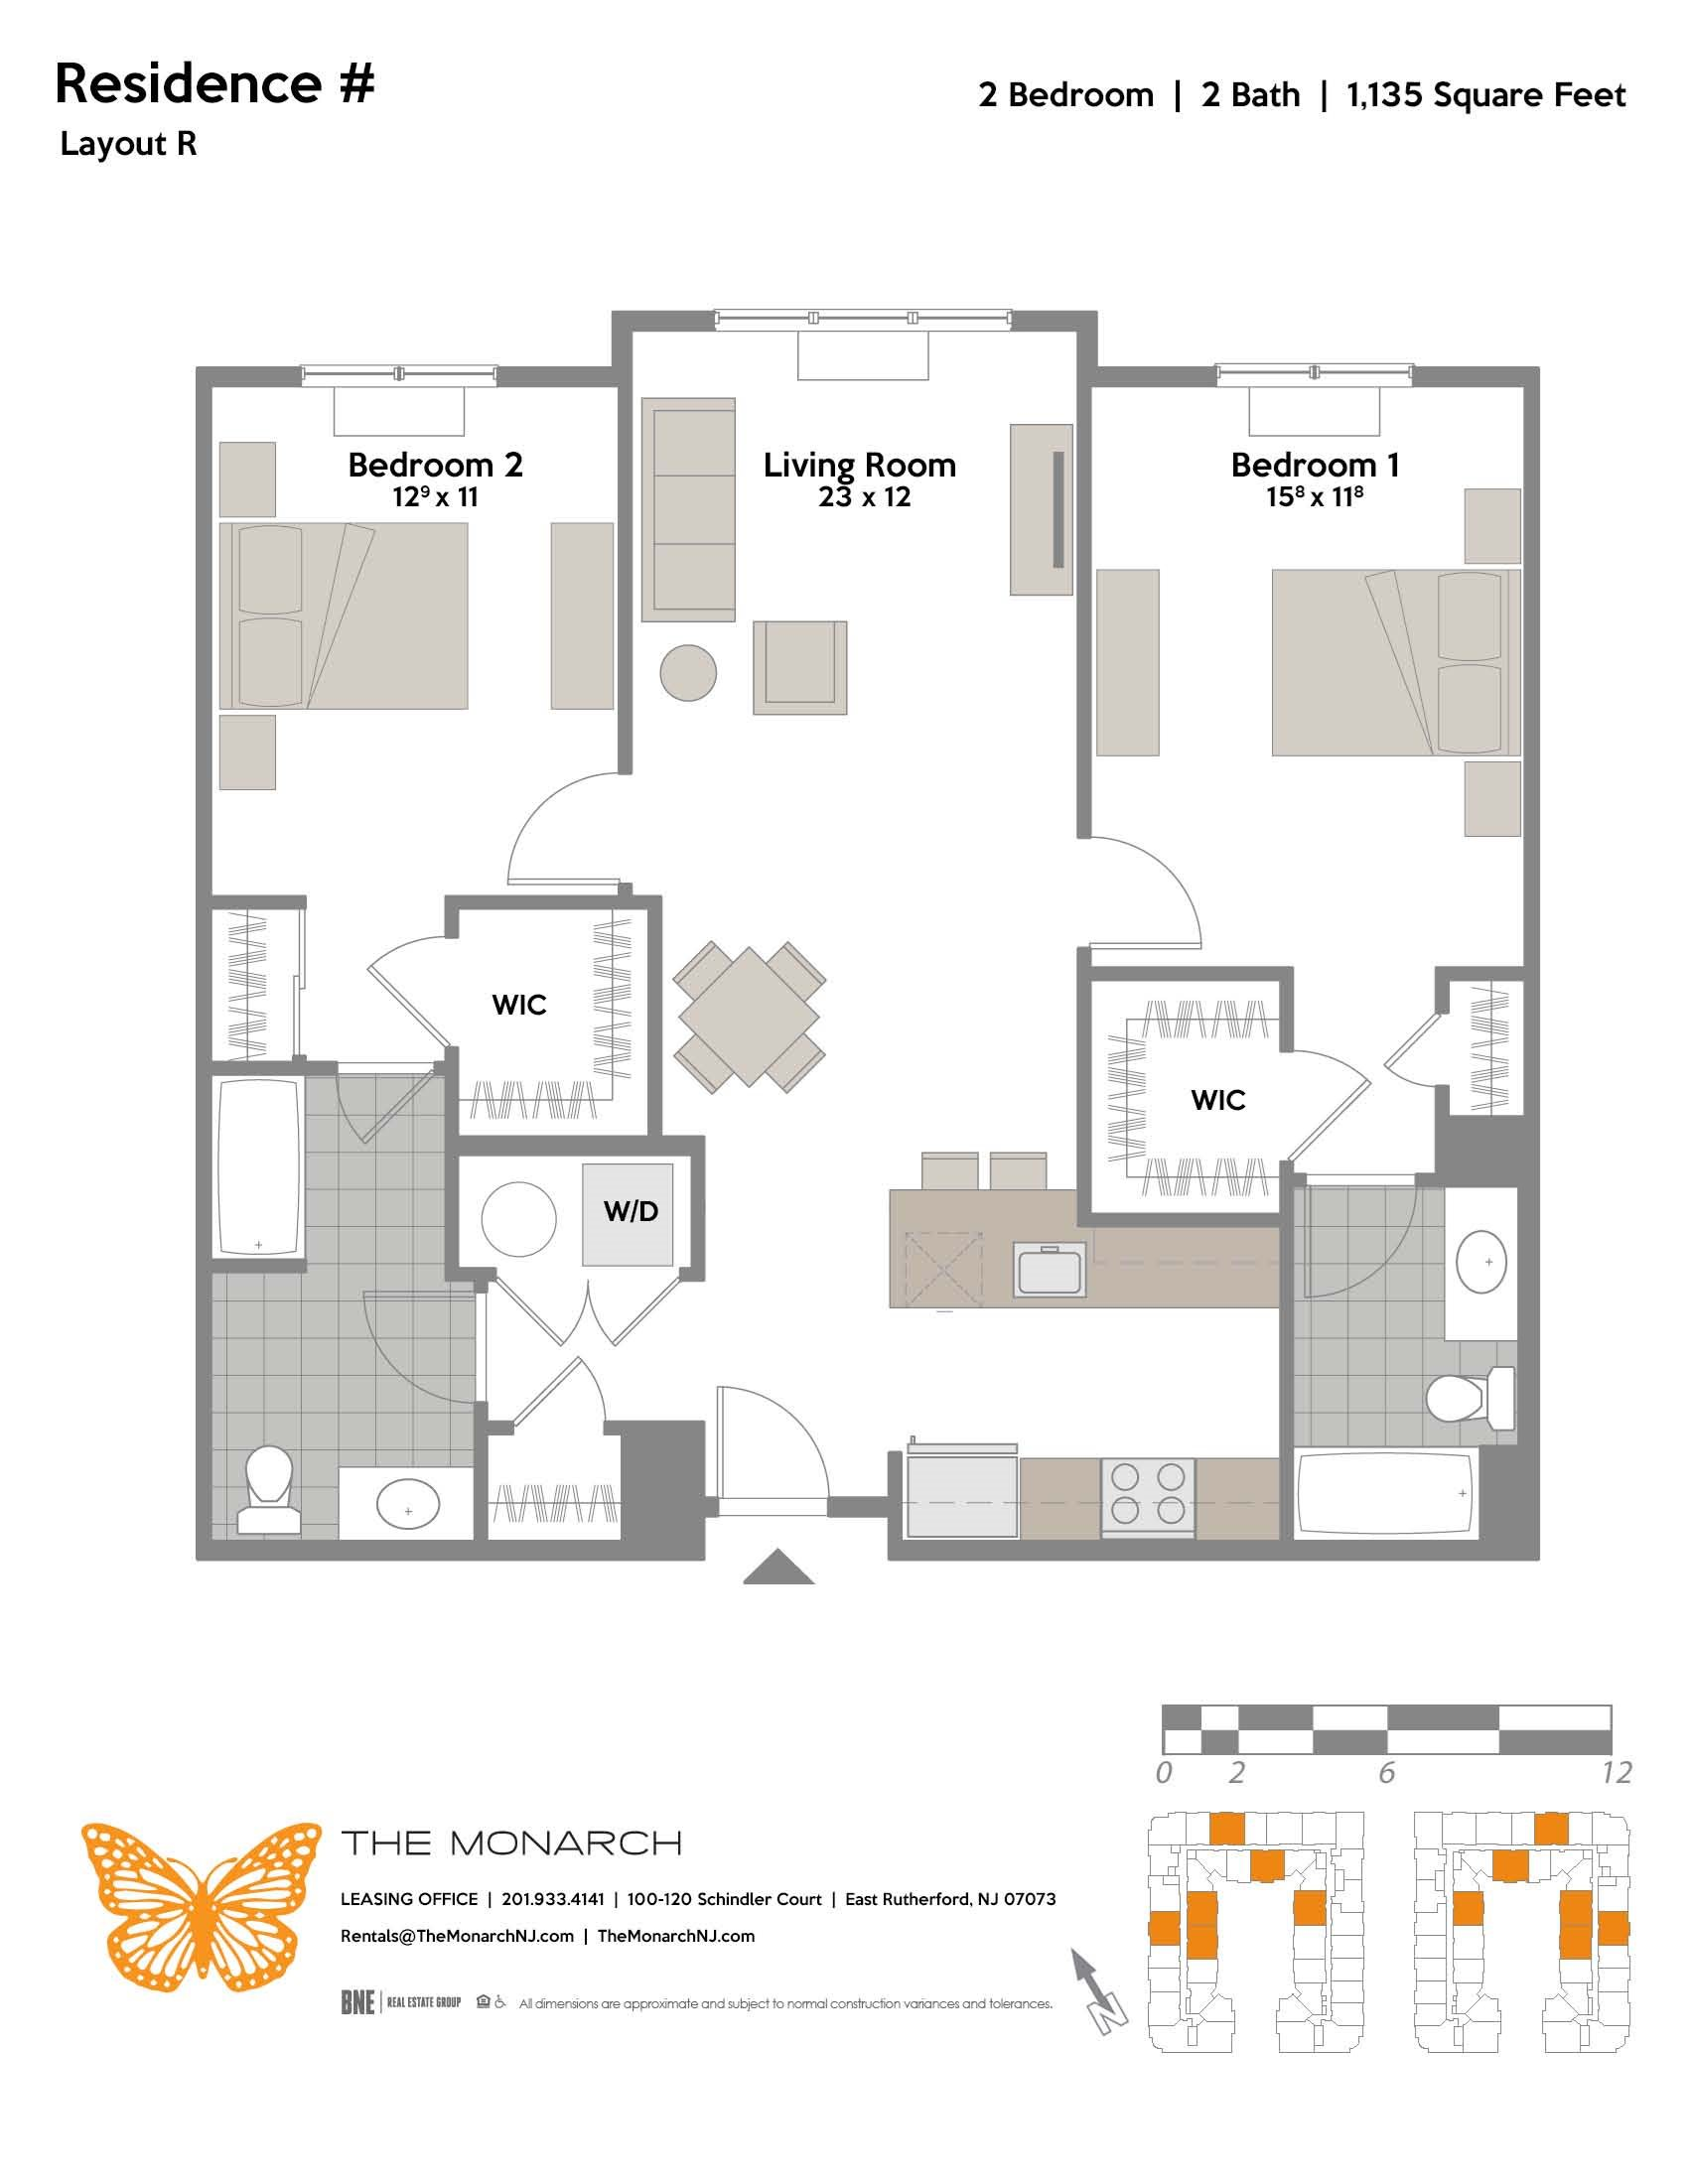 Layout R Floor Plan 8